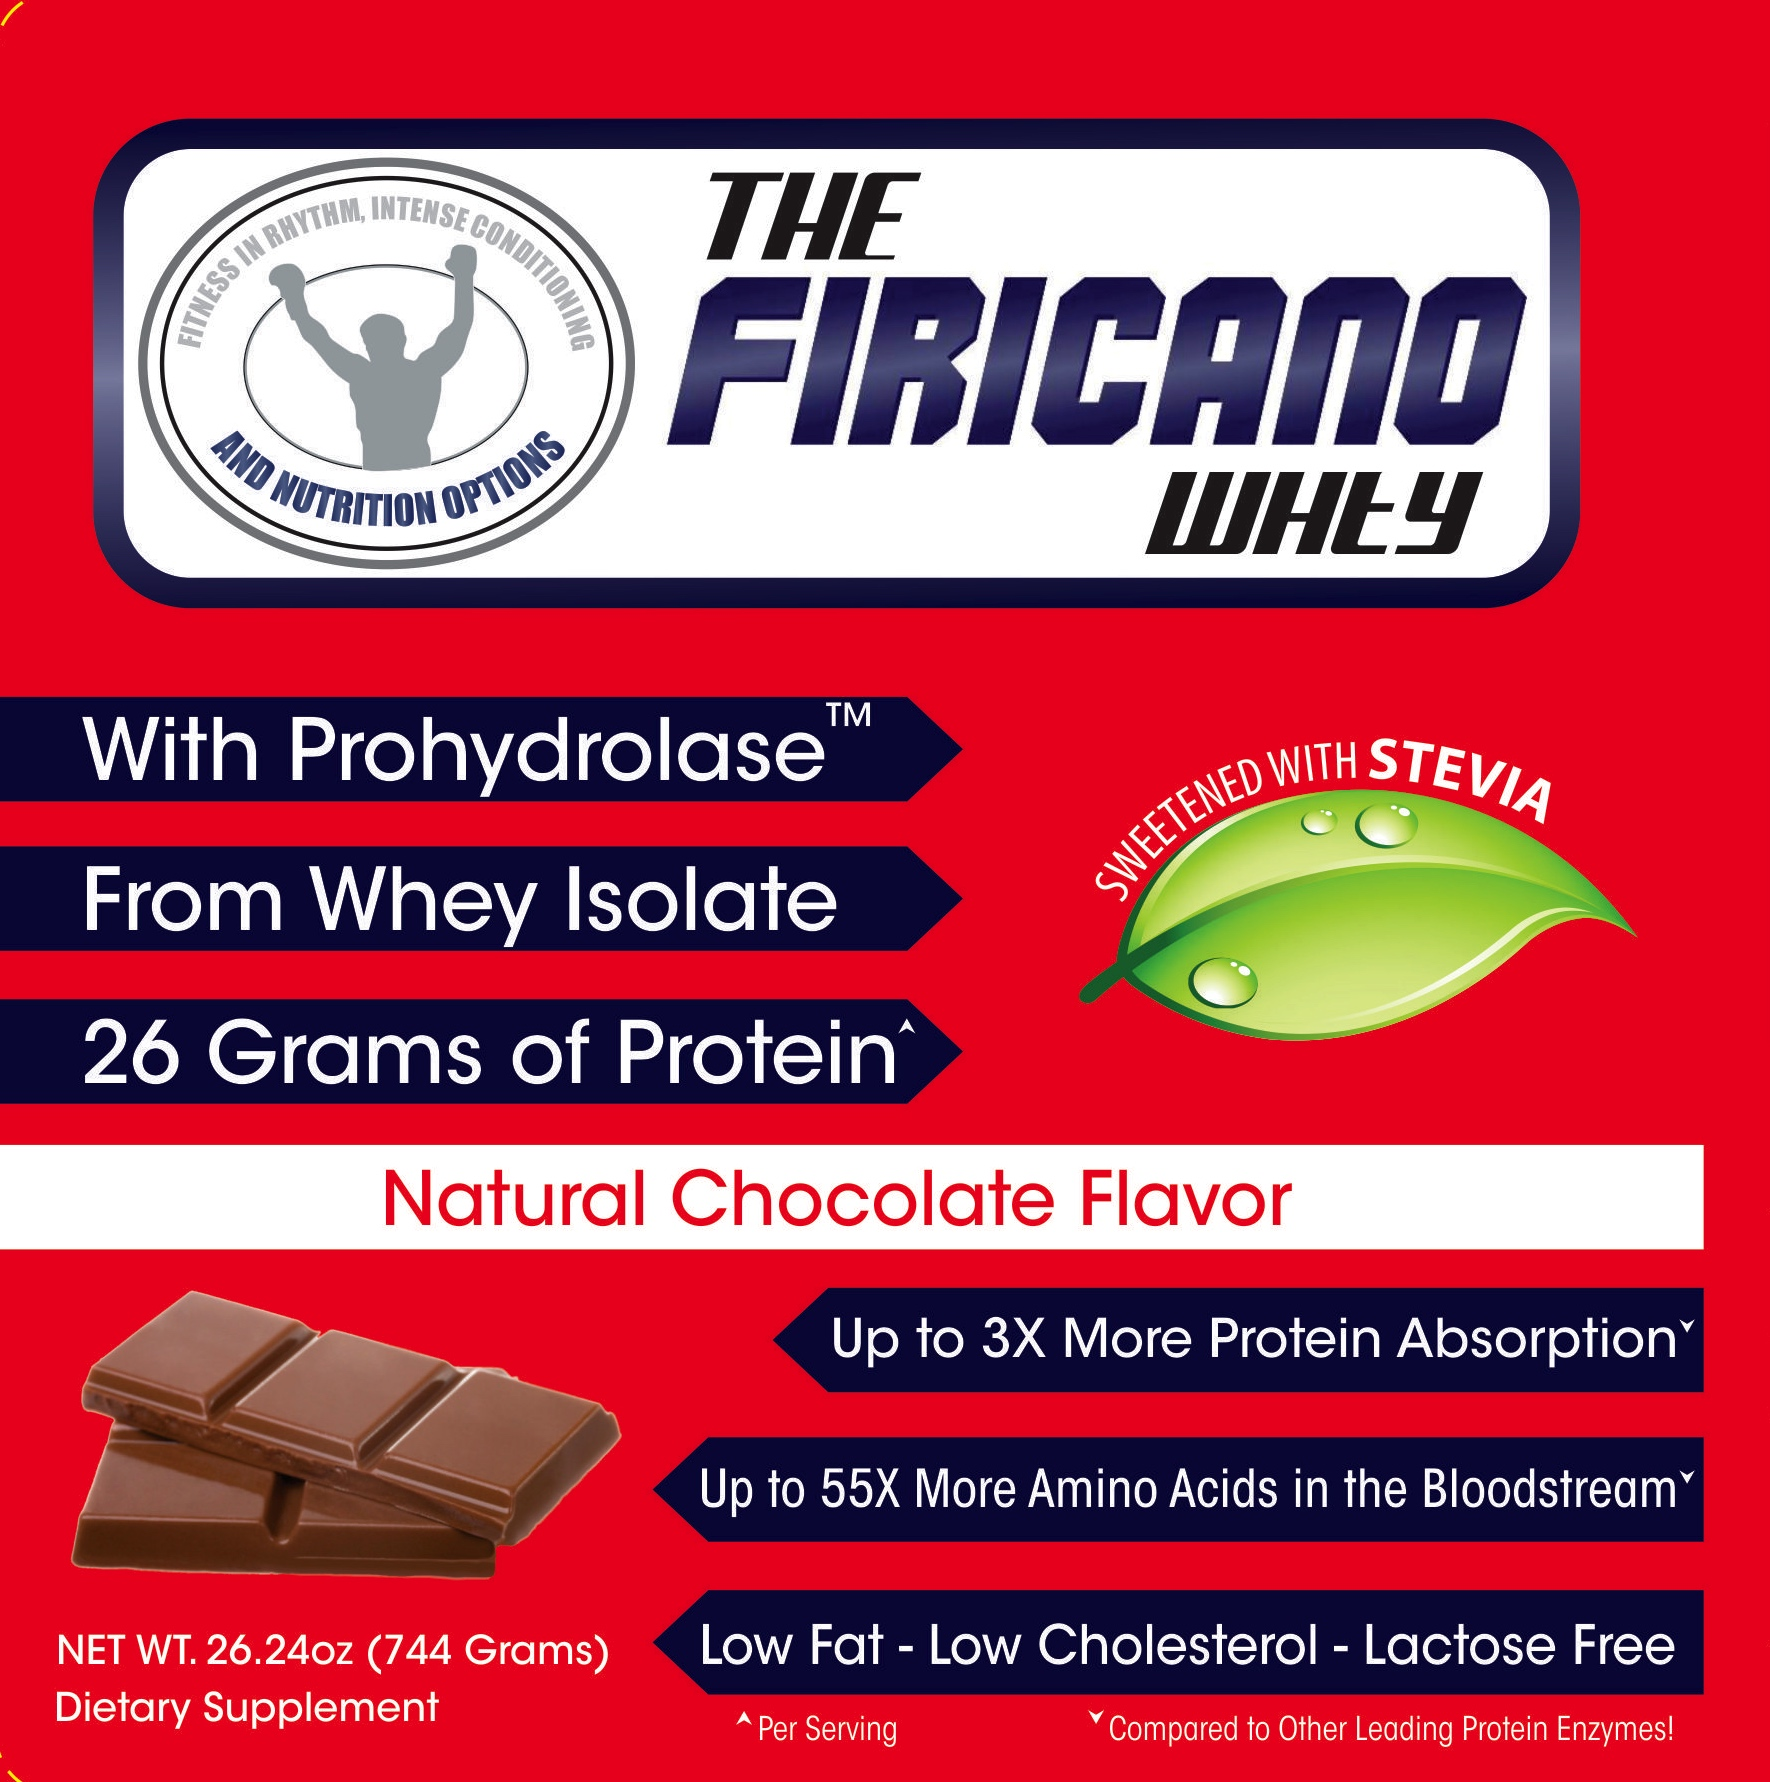 Ingredients - Whey Protein isolate, Cocoa Powder, Natural Flavors, Xanthan Gum, Prohydrolase, Monk Fruit, Salt, Stevia Leaf Extract and Sunflower LecithinMacros: 120 Calories 26g Protein 3g Carbohydrate 0.5g Fat